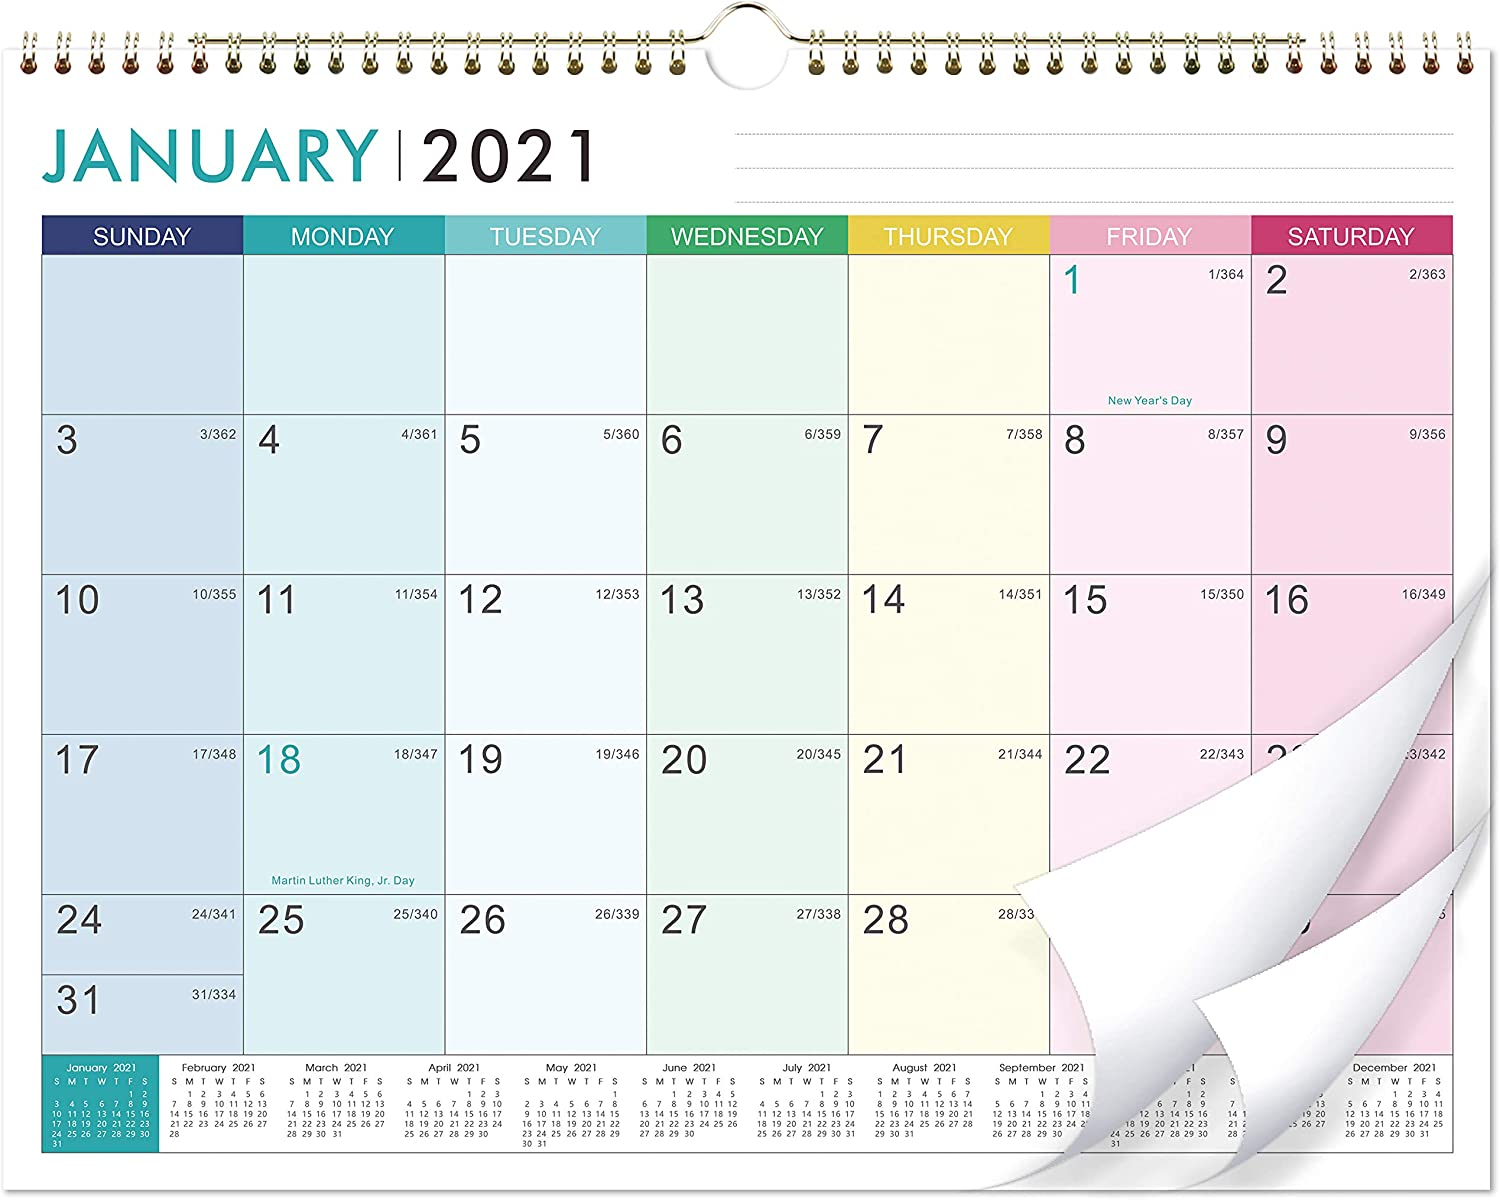 "2021 Calendar - 12 Monthly Wall Calendar with Thick Paper, 14"" x 11"", Jan. 2021 - Dec. 2021, Twin-Wire Binding + Hanging Hook + Unuled Blocks with Julian Date, Horizontal - Colorful Lump"